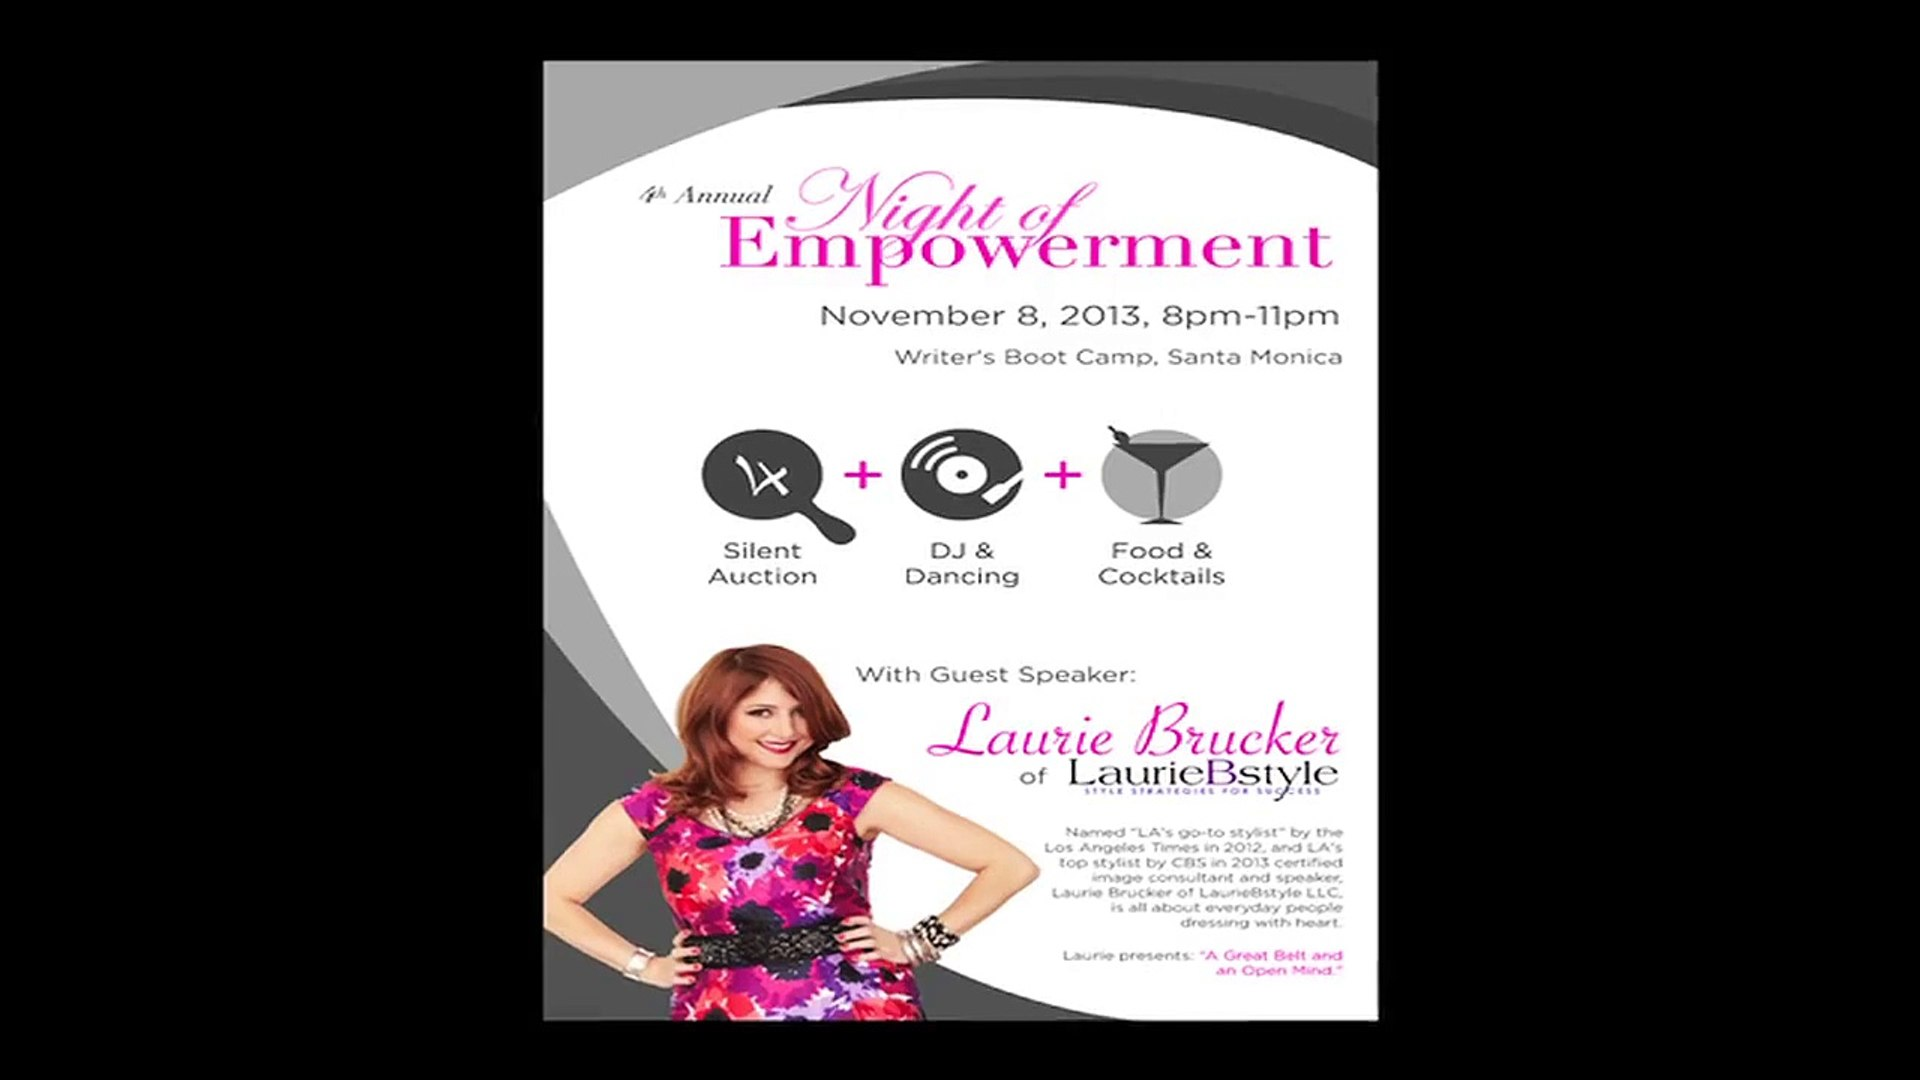 Women Empowered - 2013 - A Non-Profit Organization in Los Angeles